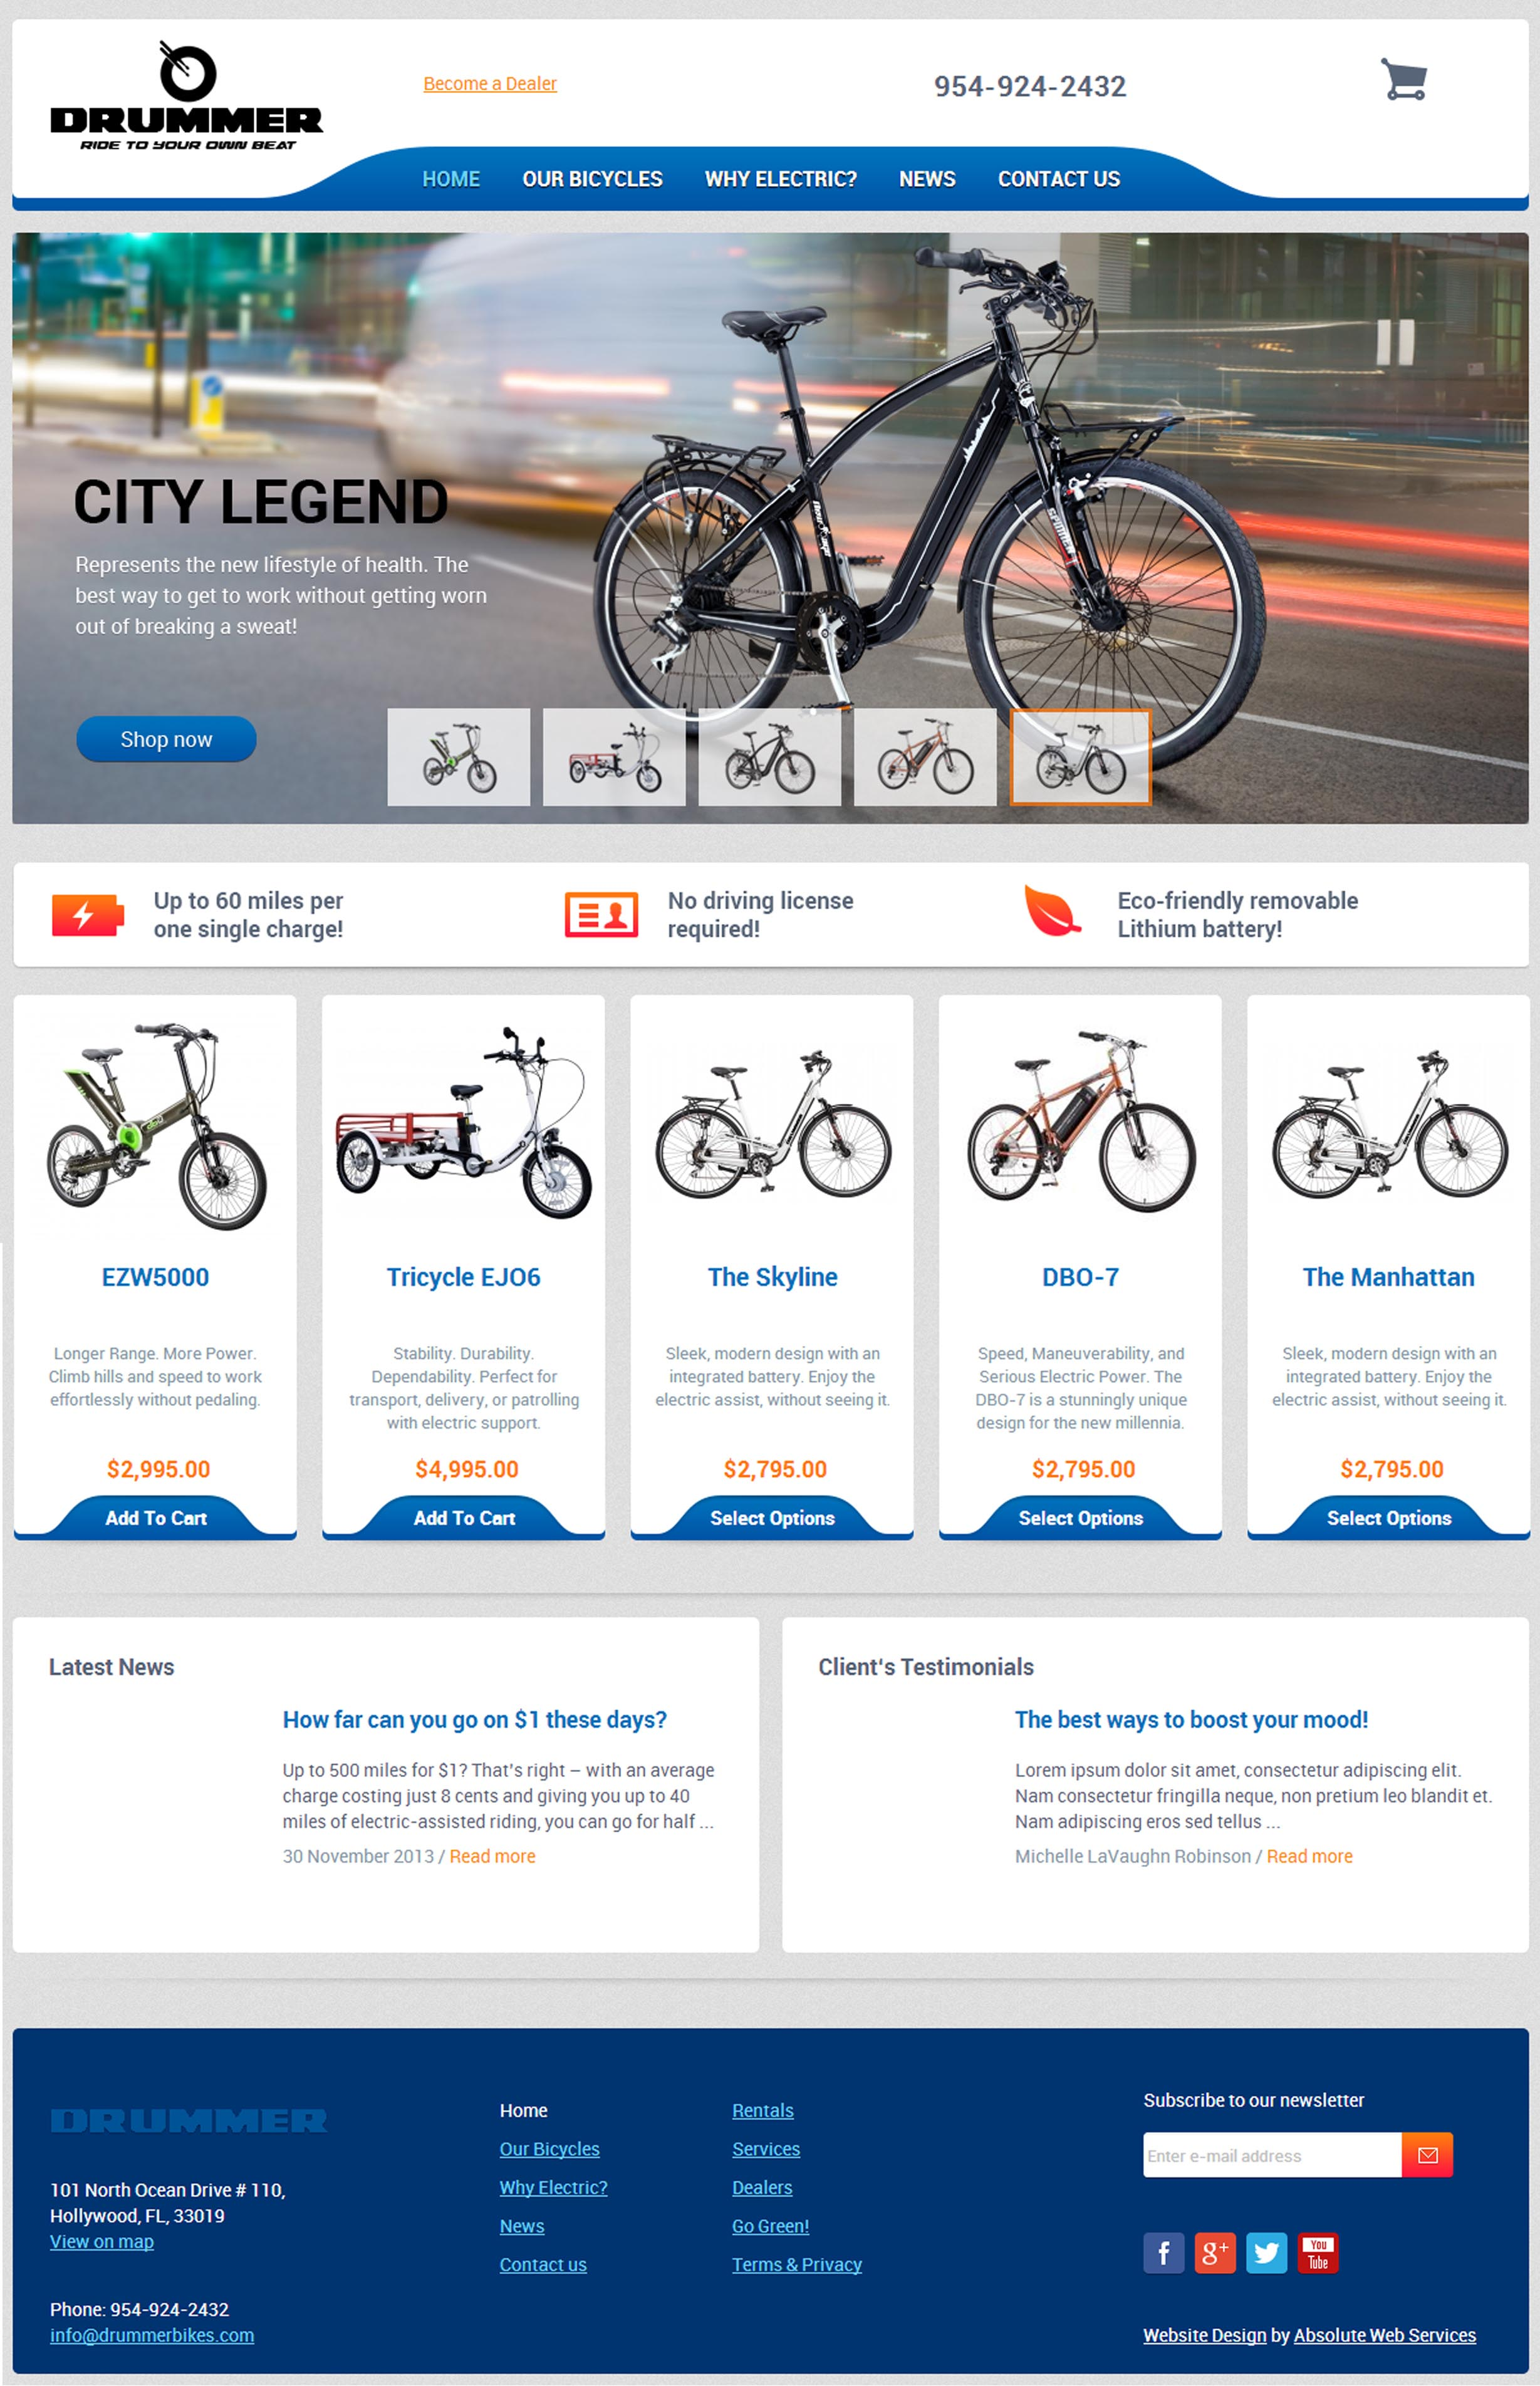 drummer bikes contracts miami web design firm absolute web